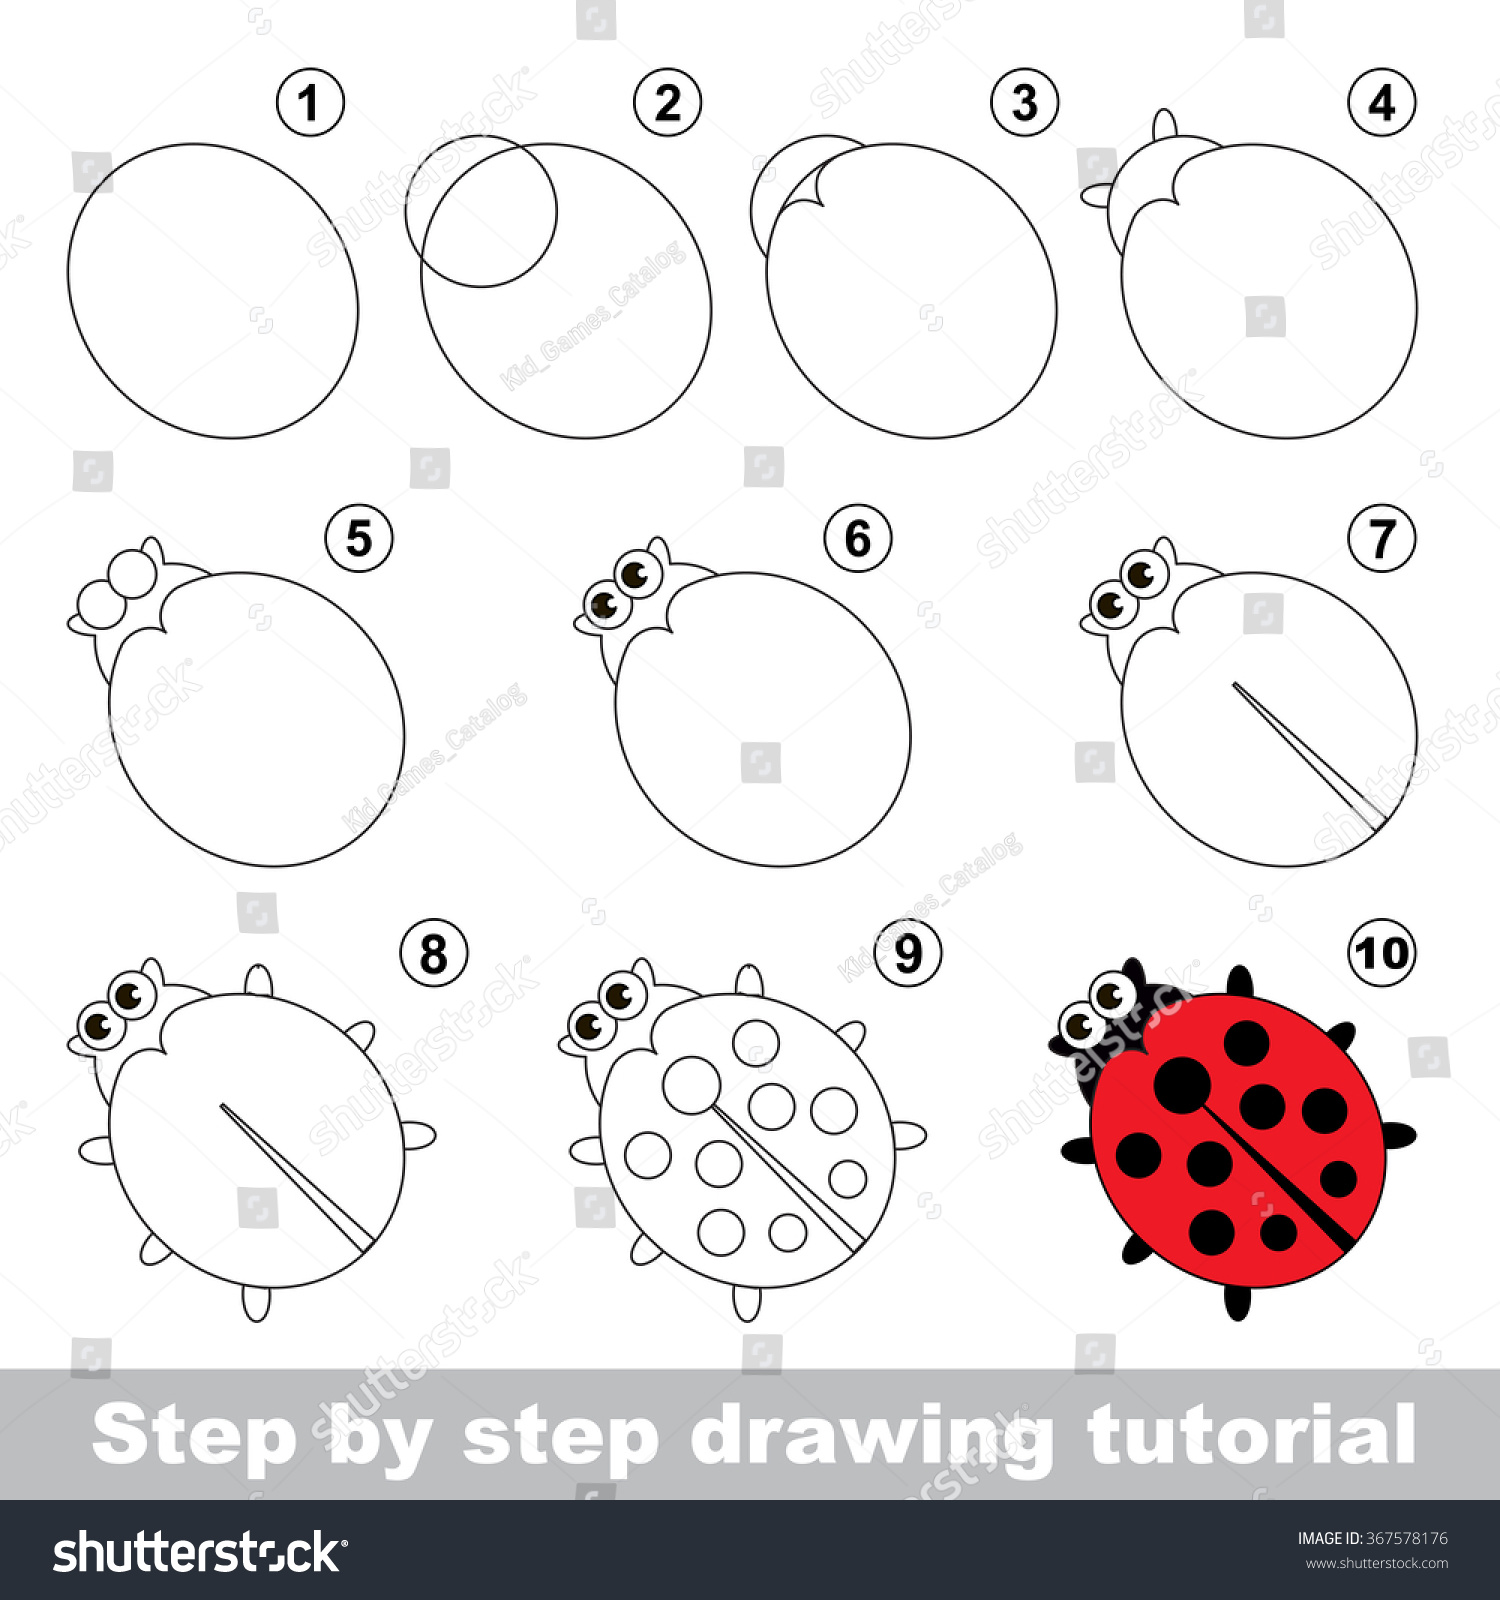 Red ladybug step by step drawing stock vector 367578176 shutterstock red ladybug step by step drawing tutorial pooptronica Gallery